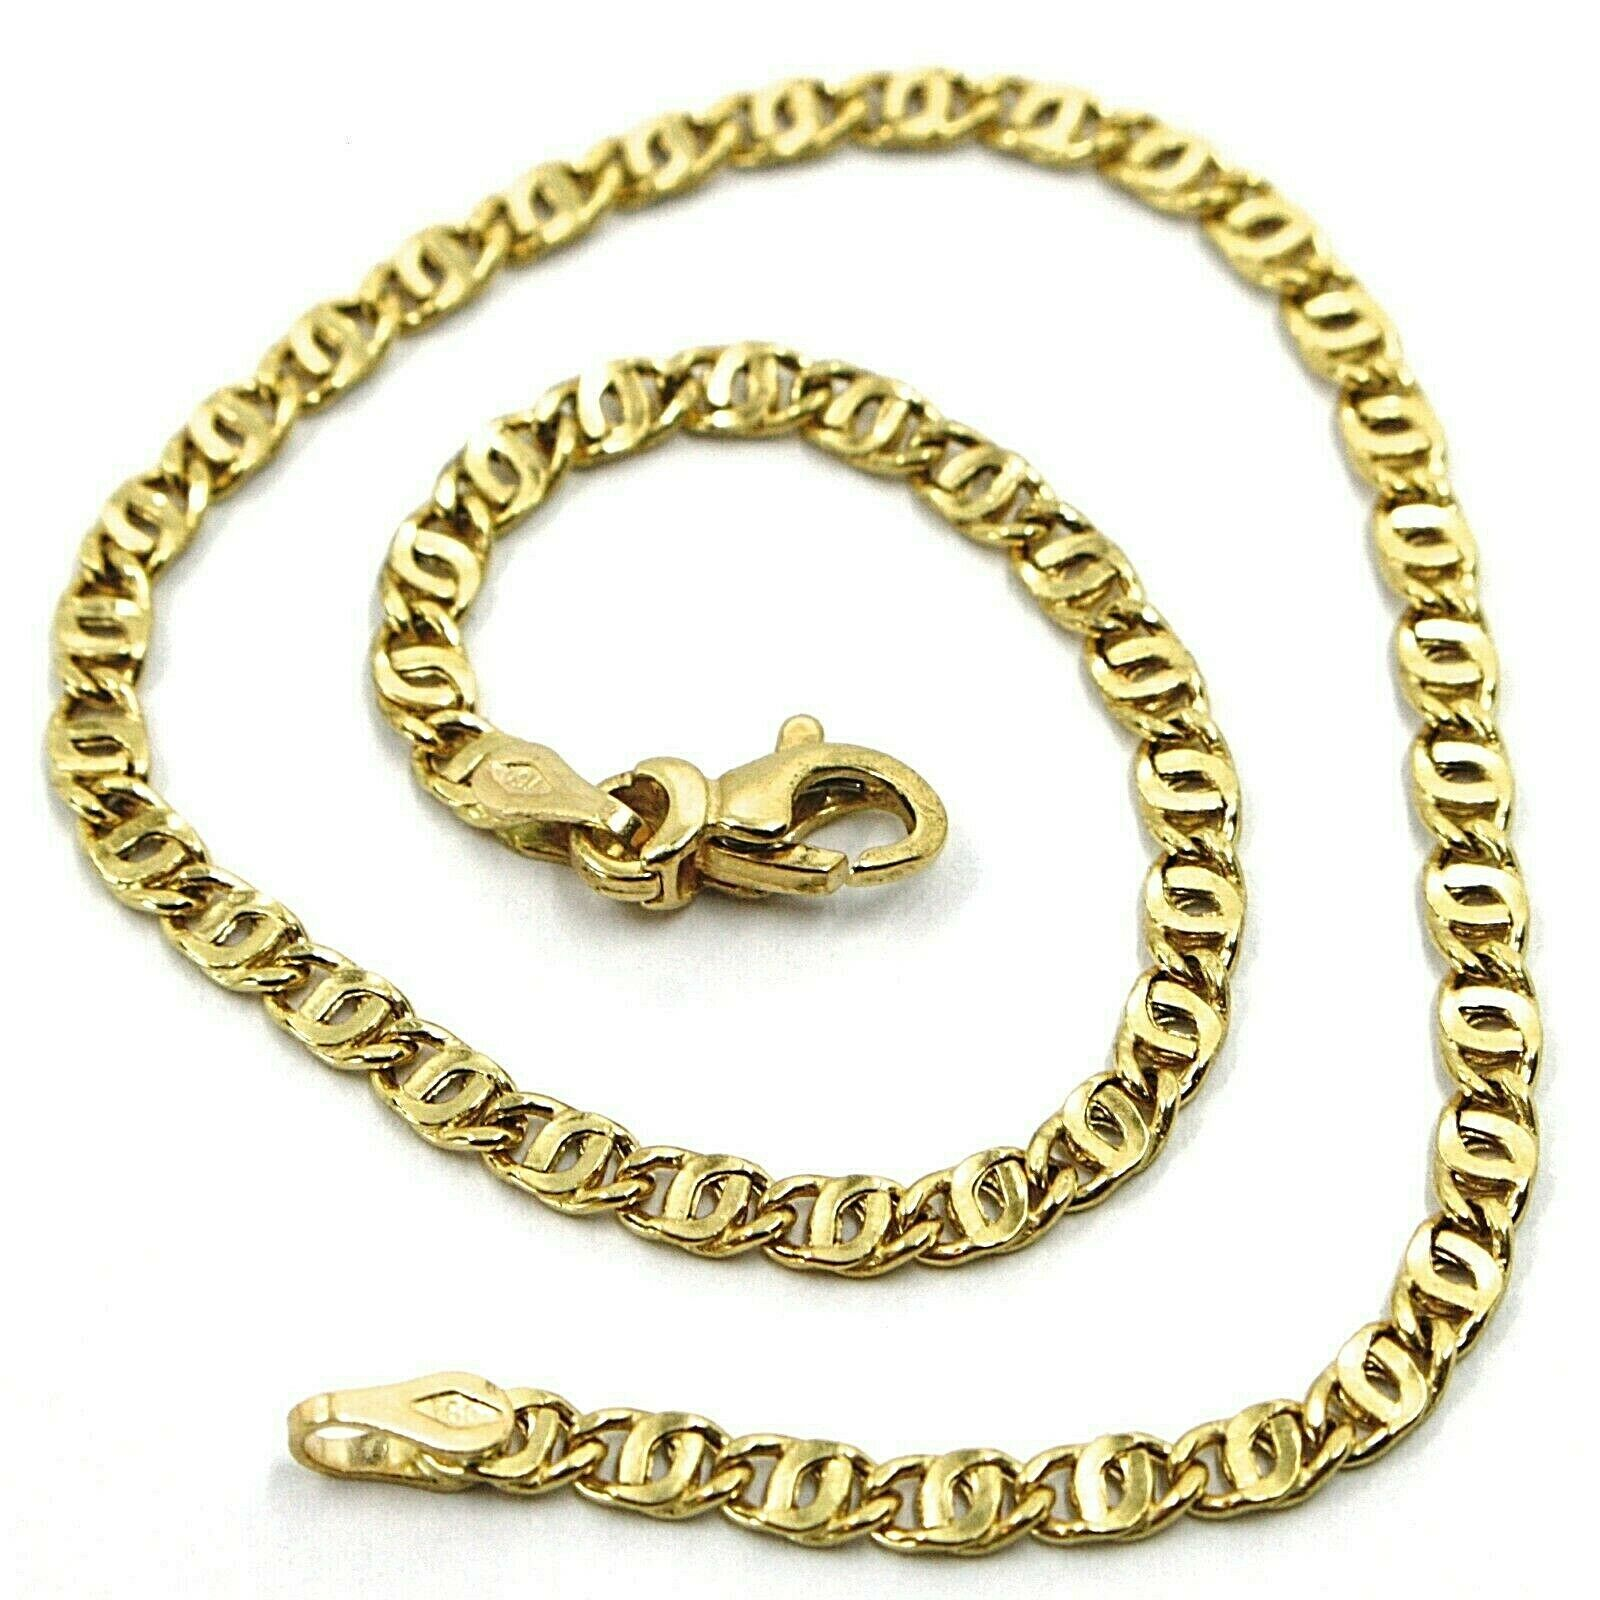 "Primary image for 18K YELLOW GOLD BRACELET WAVY TYGER EYE LINKS 2.8mm, 0.11"" LENGTH 21cm, 8.3"""